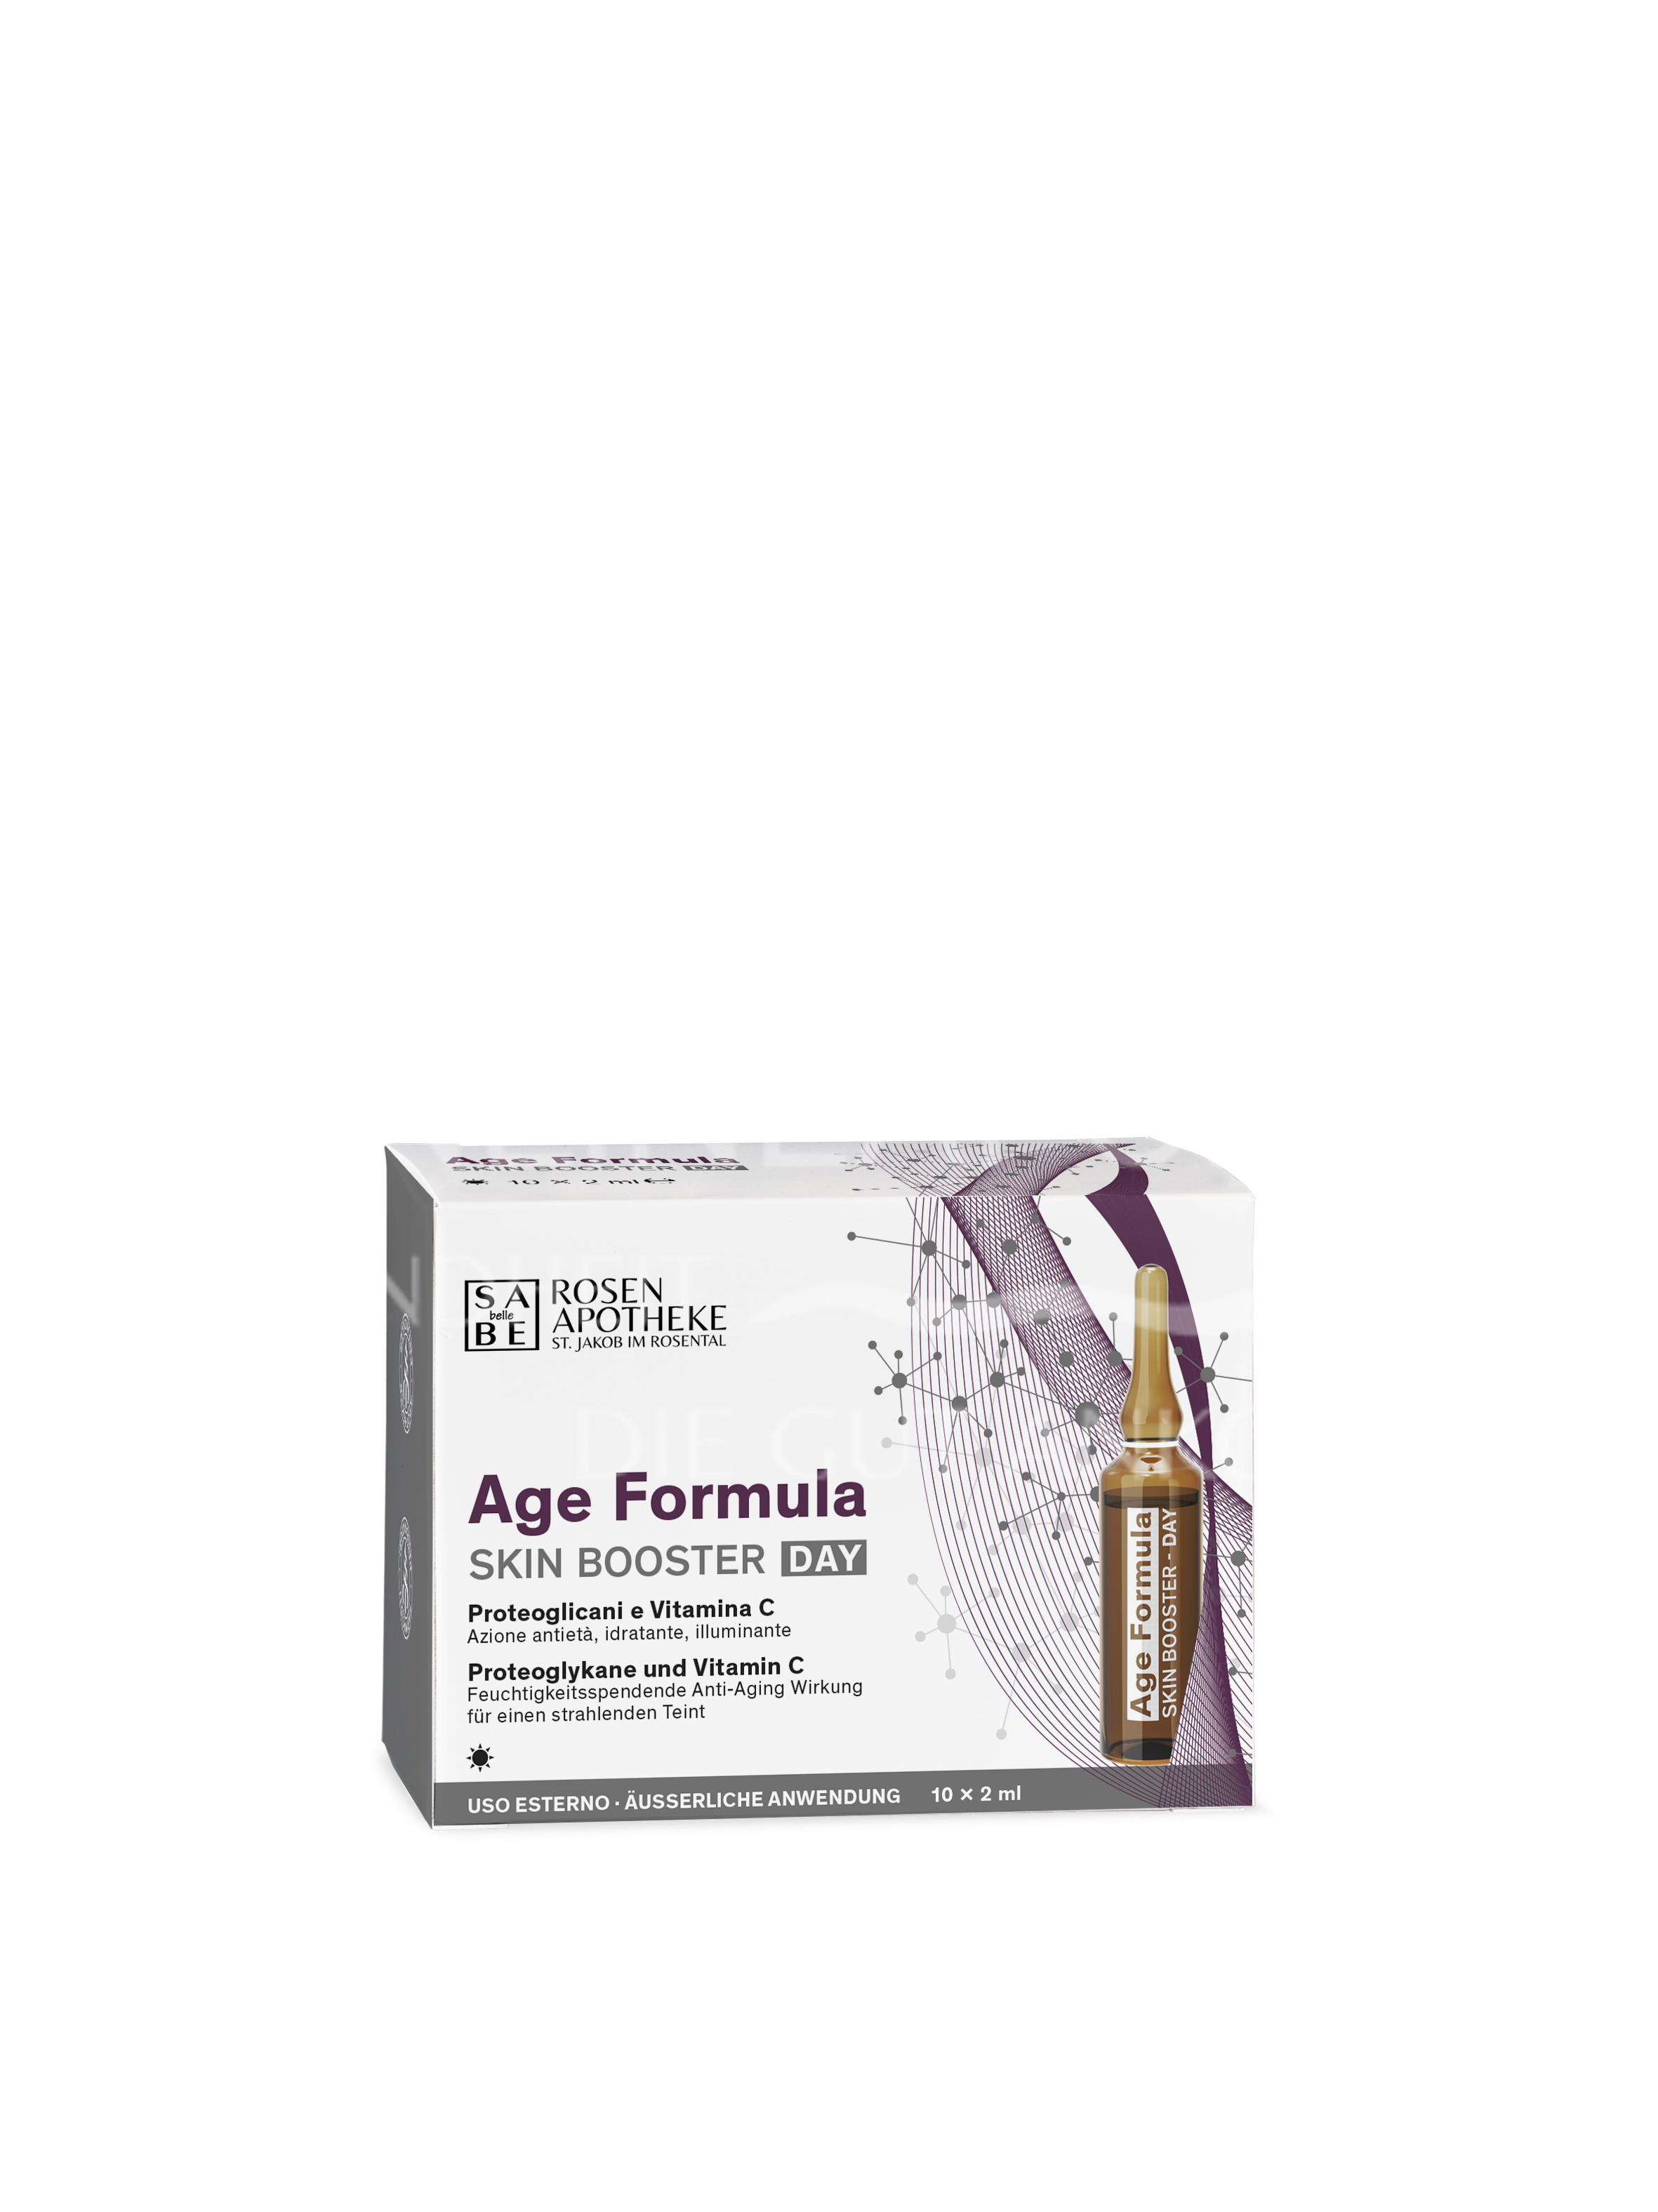 SABE belle Age Formula Skin Booster Day à 2 ml